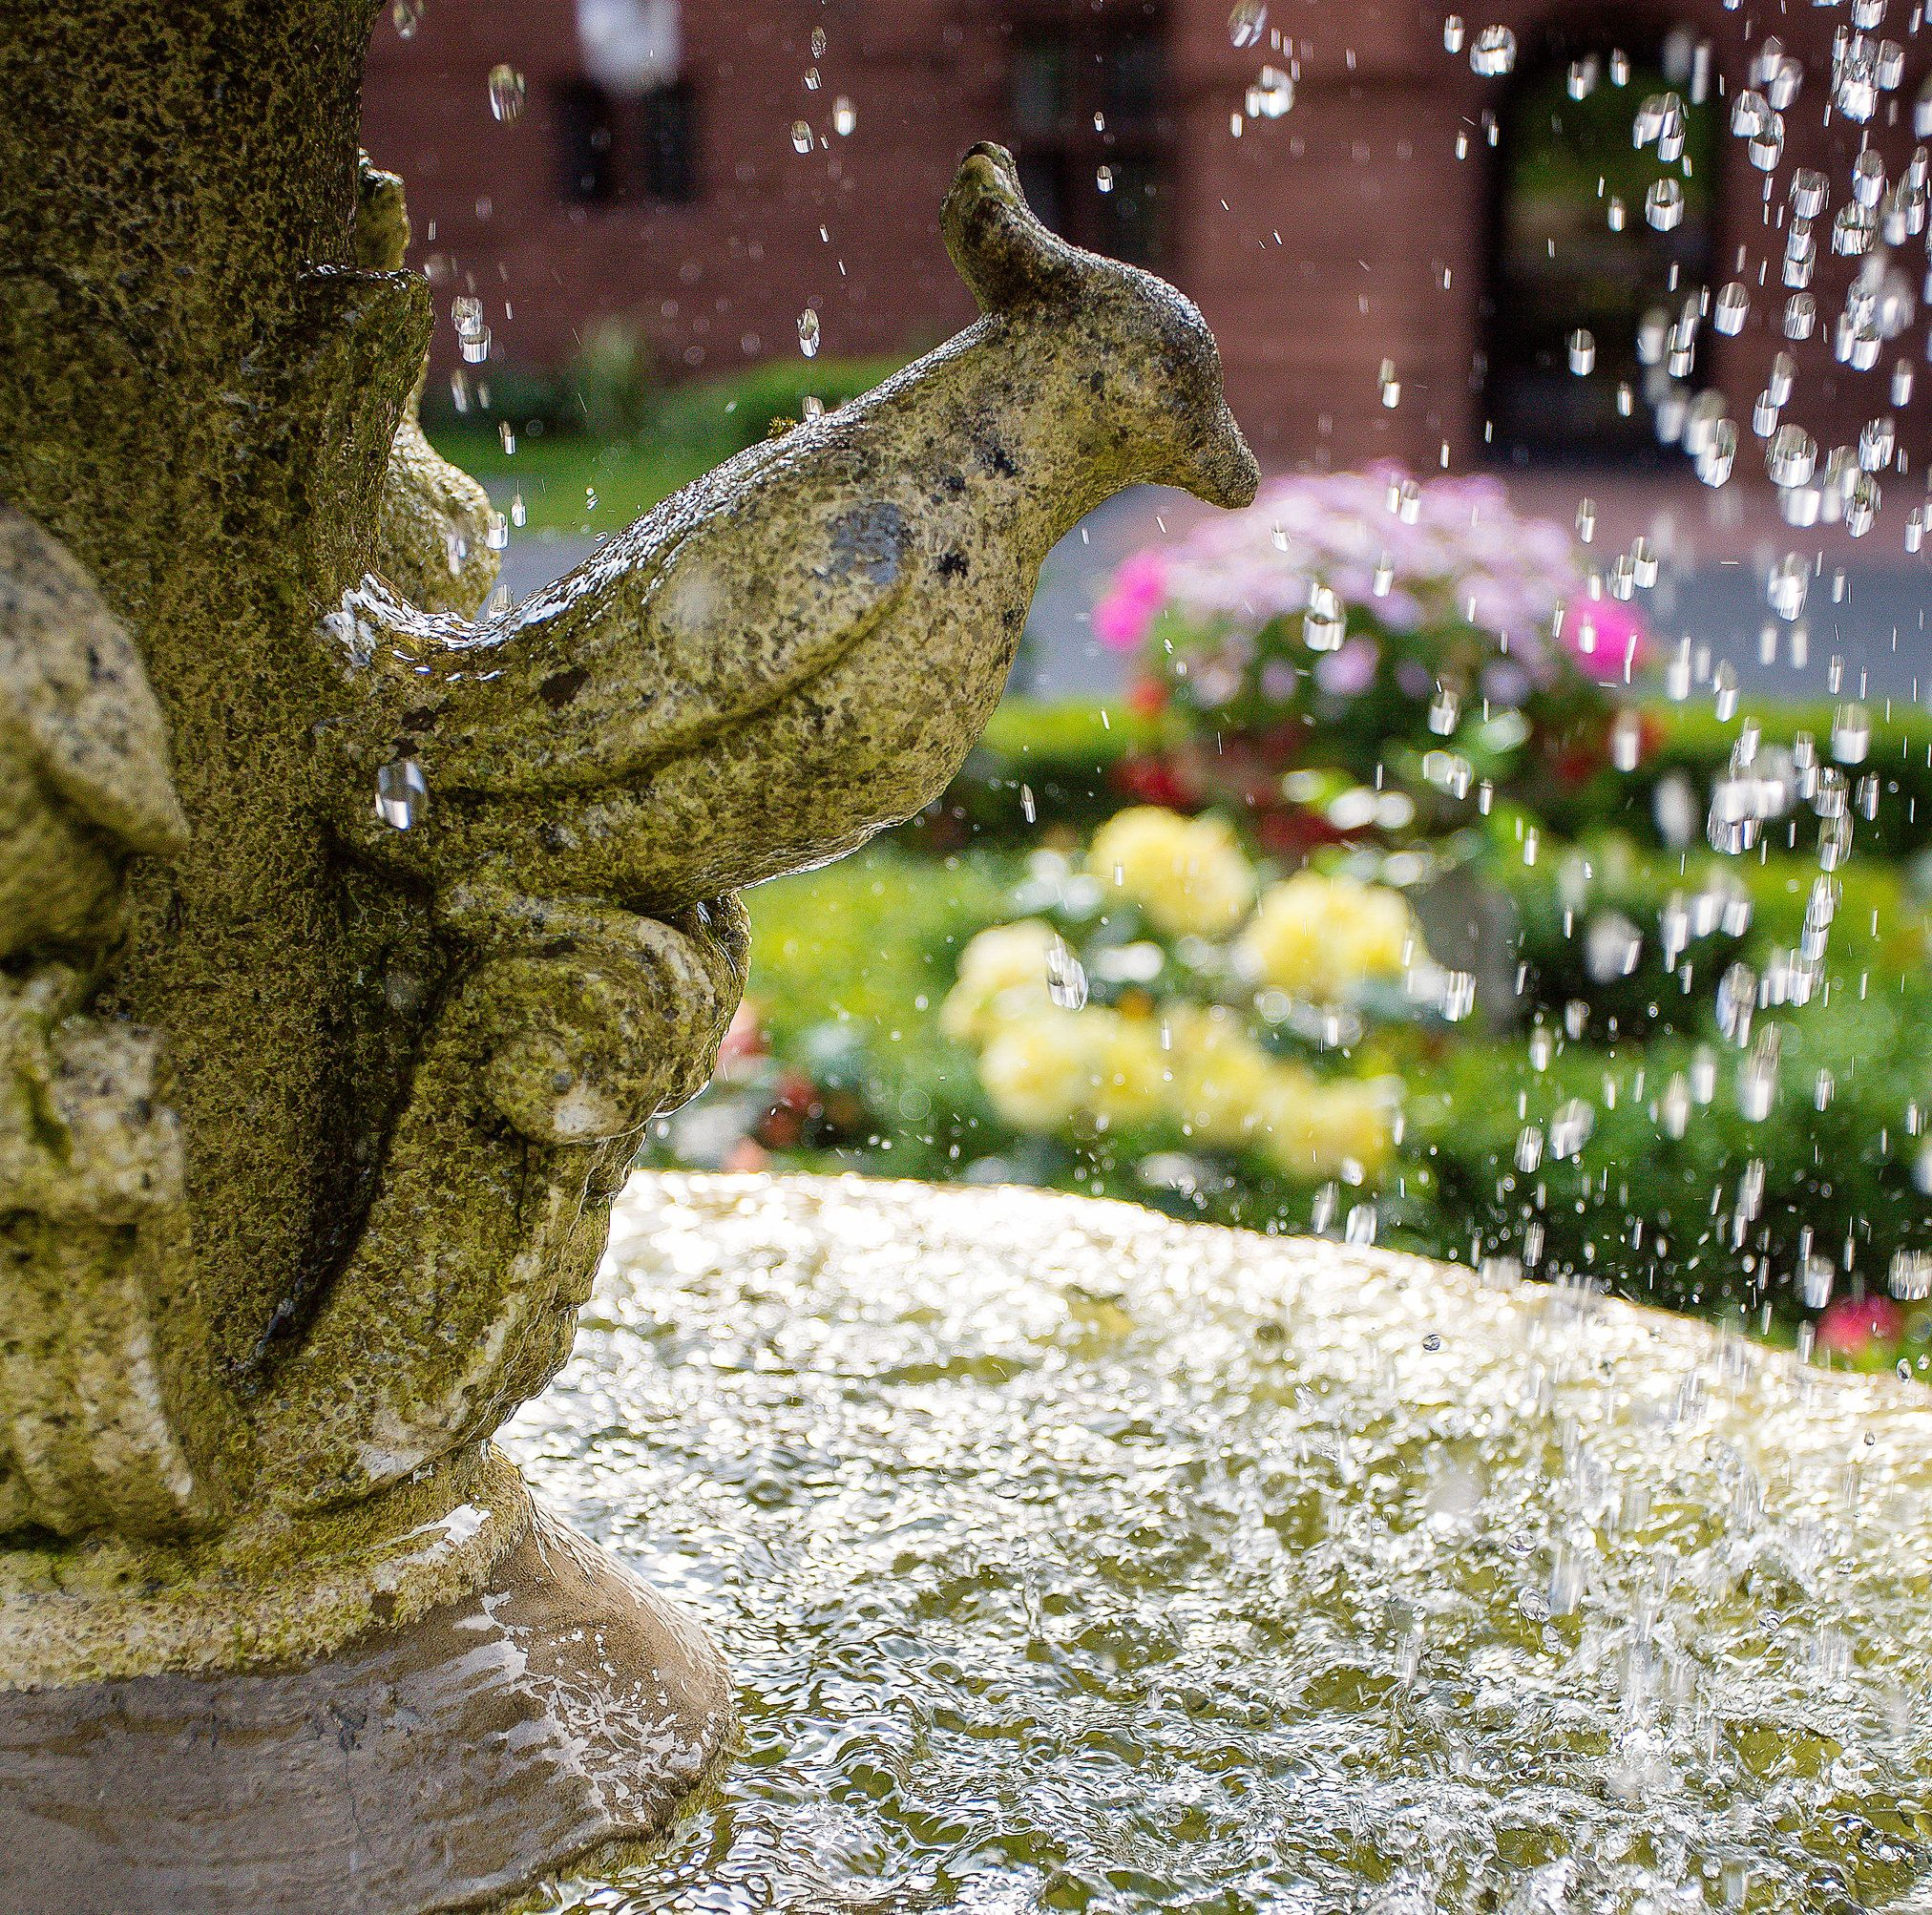 Ornate stone bird fountain feature and water falling into fountain basin at Abbey House